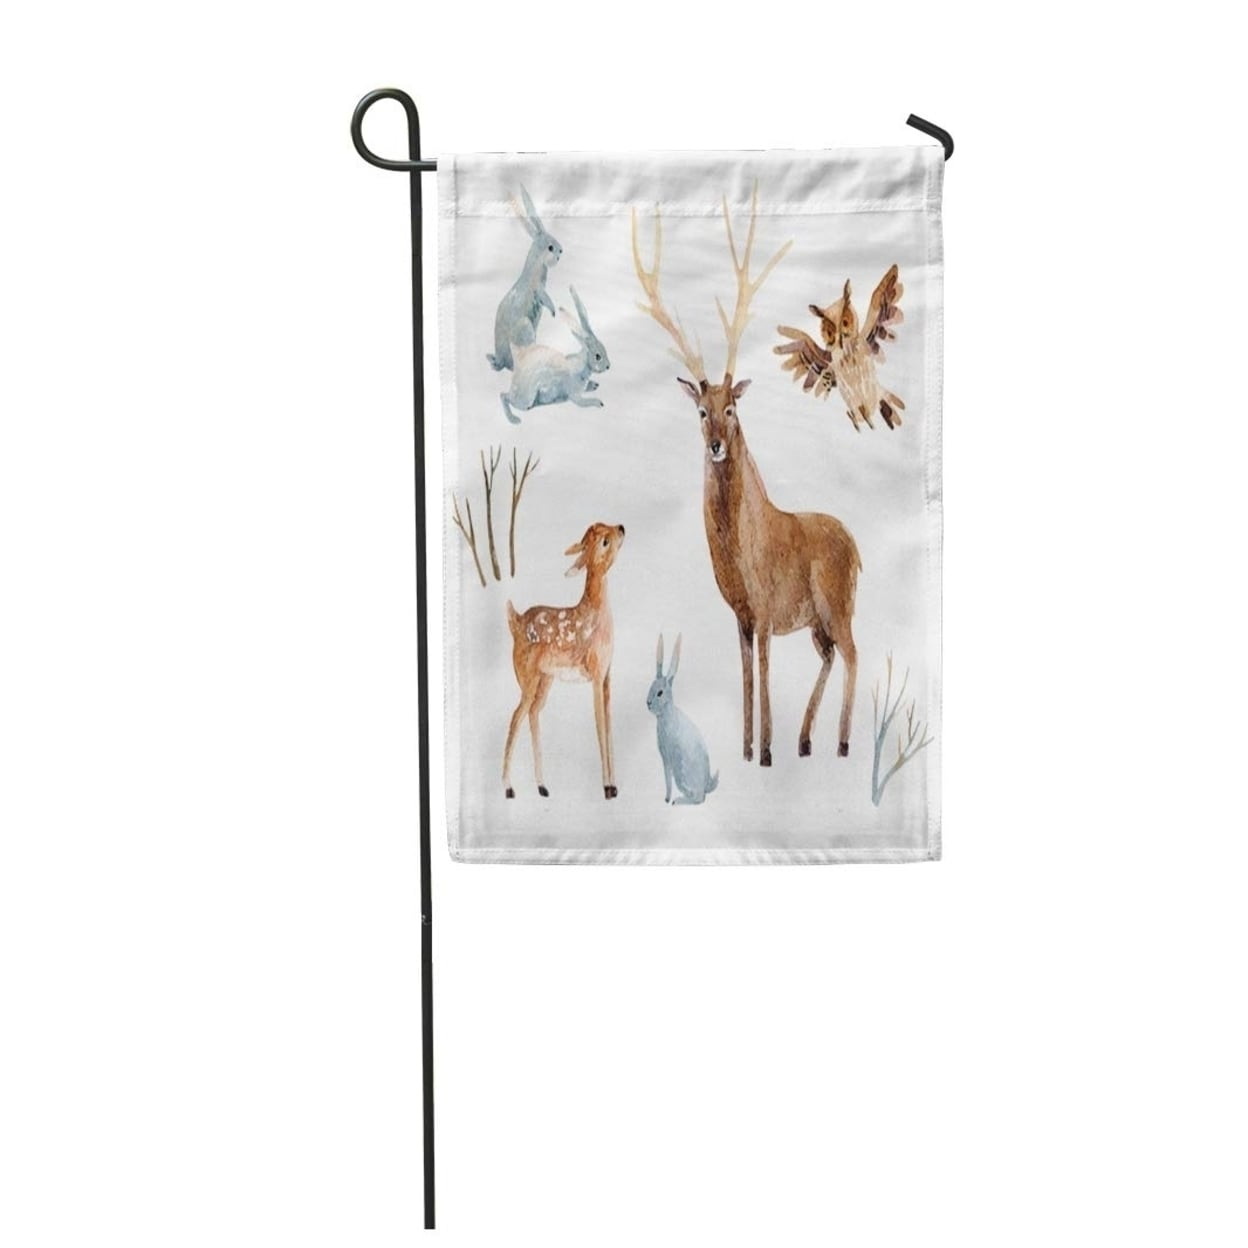 shop watercolor deer fawn rabbits birds wild forest hand winter garden flag decorative flag house banner 12x18 inch on sale overstock 31376955 overstock com